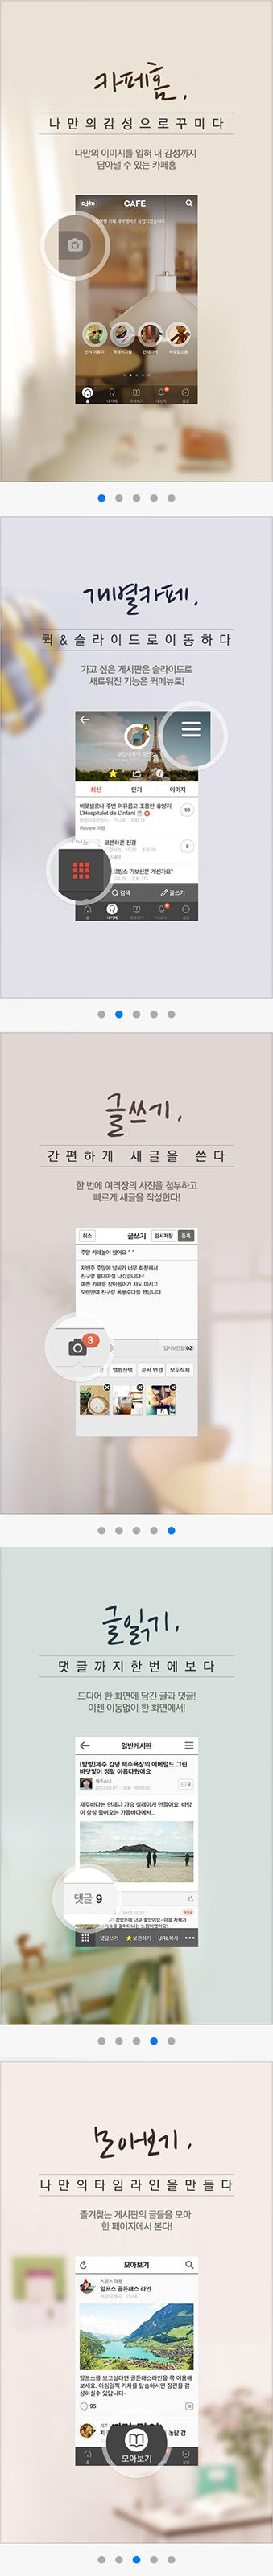 app daum cafe tutorial